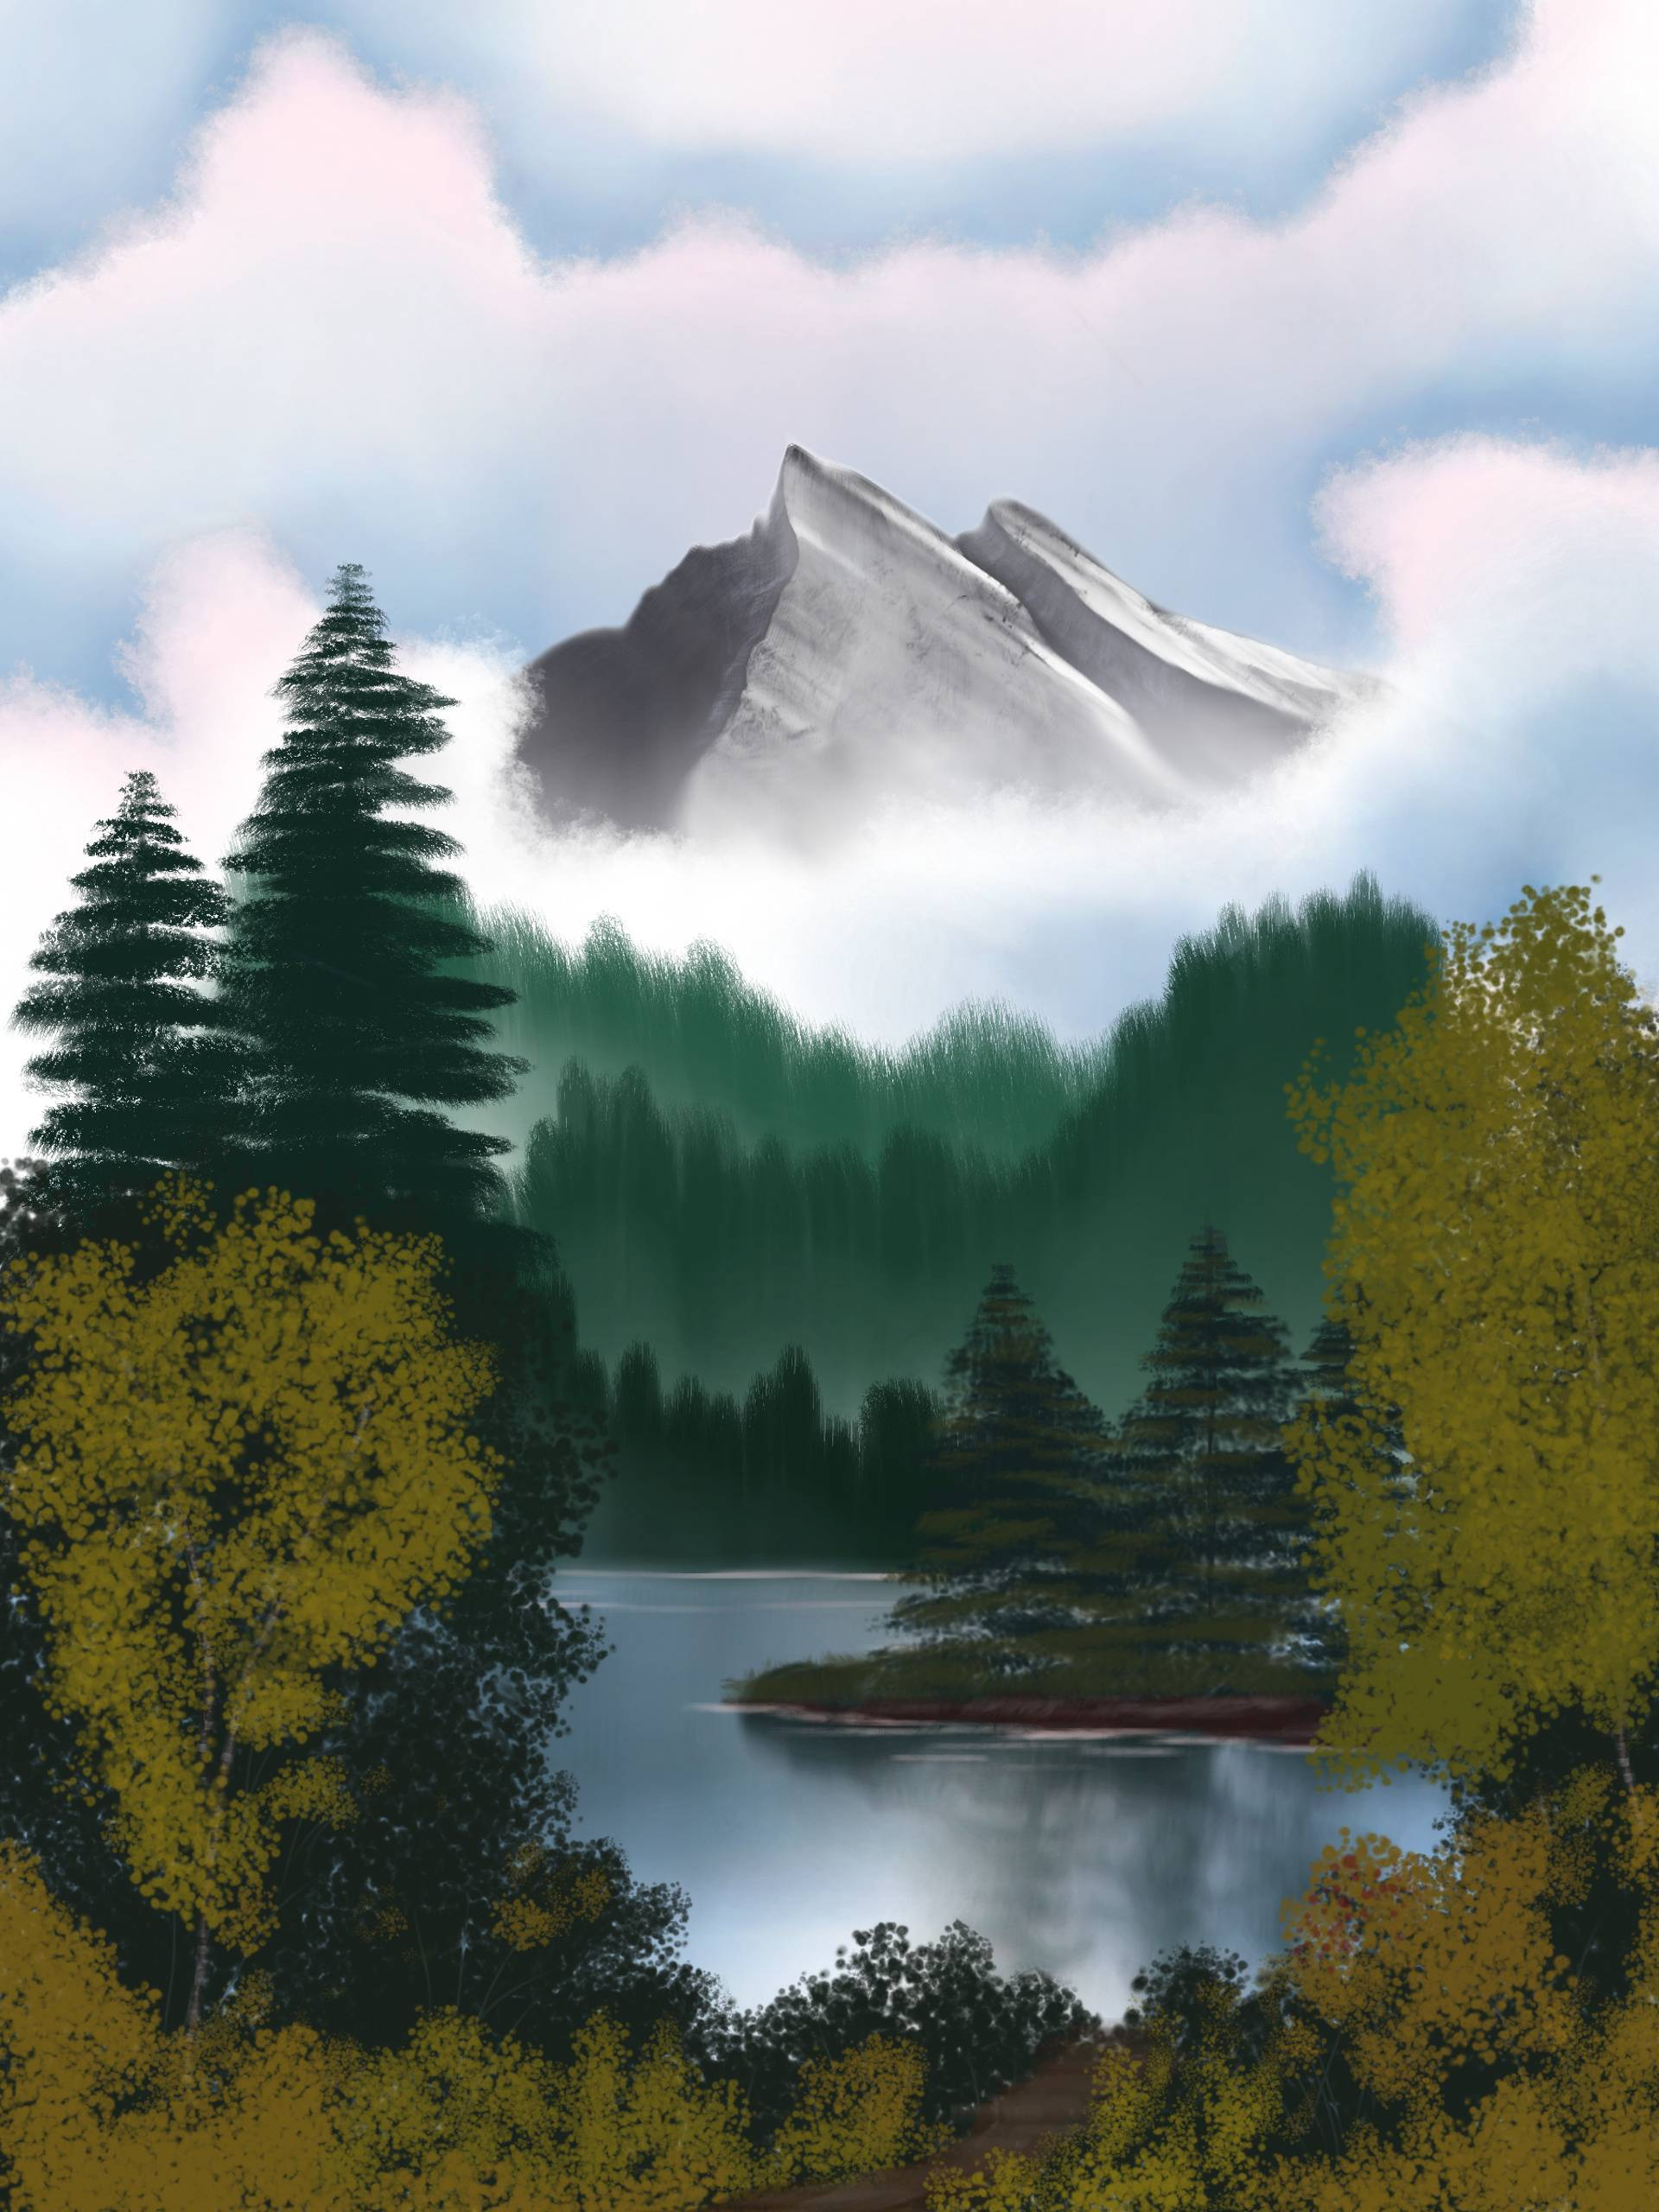 learn krita with bob ross: an analog to digital conversion